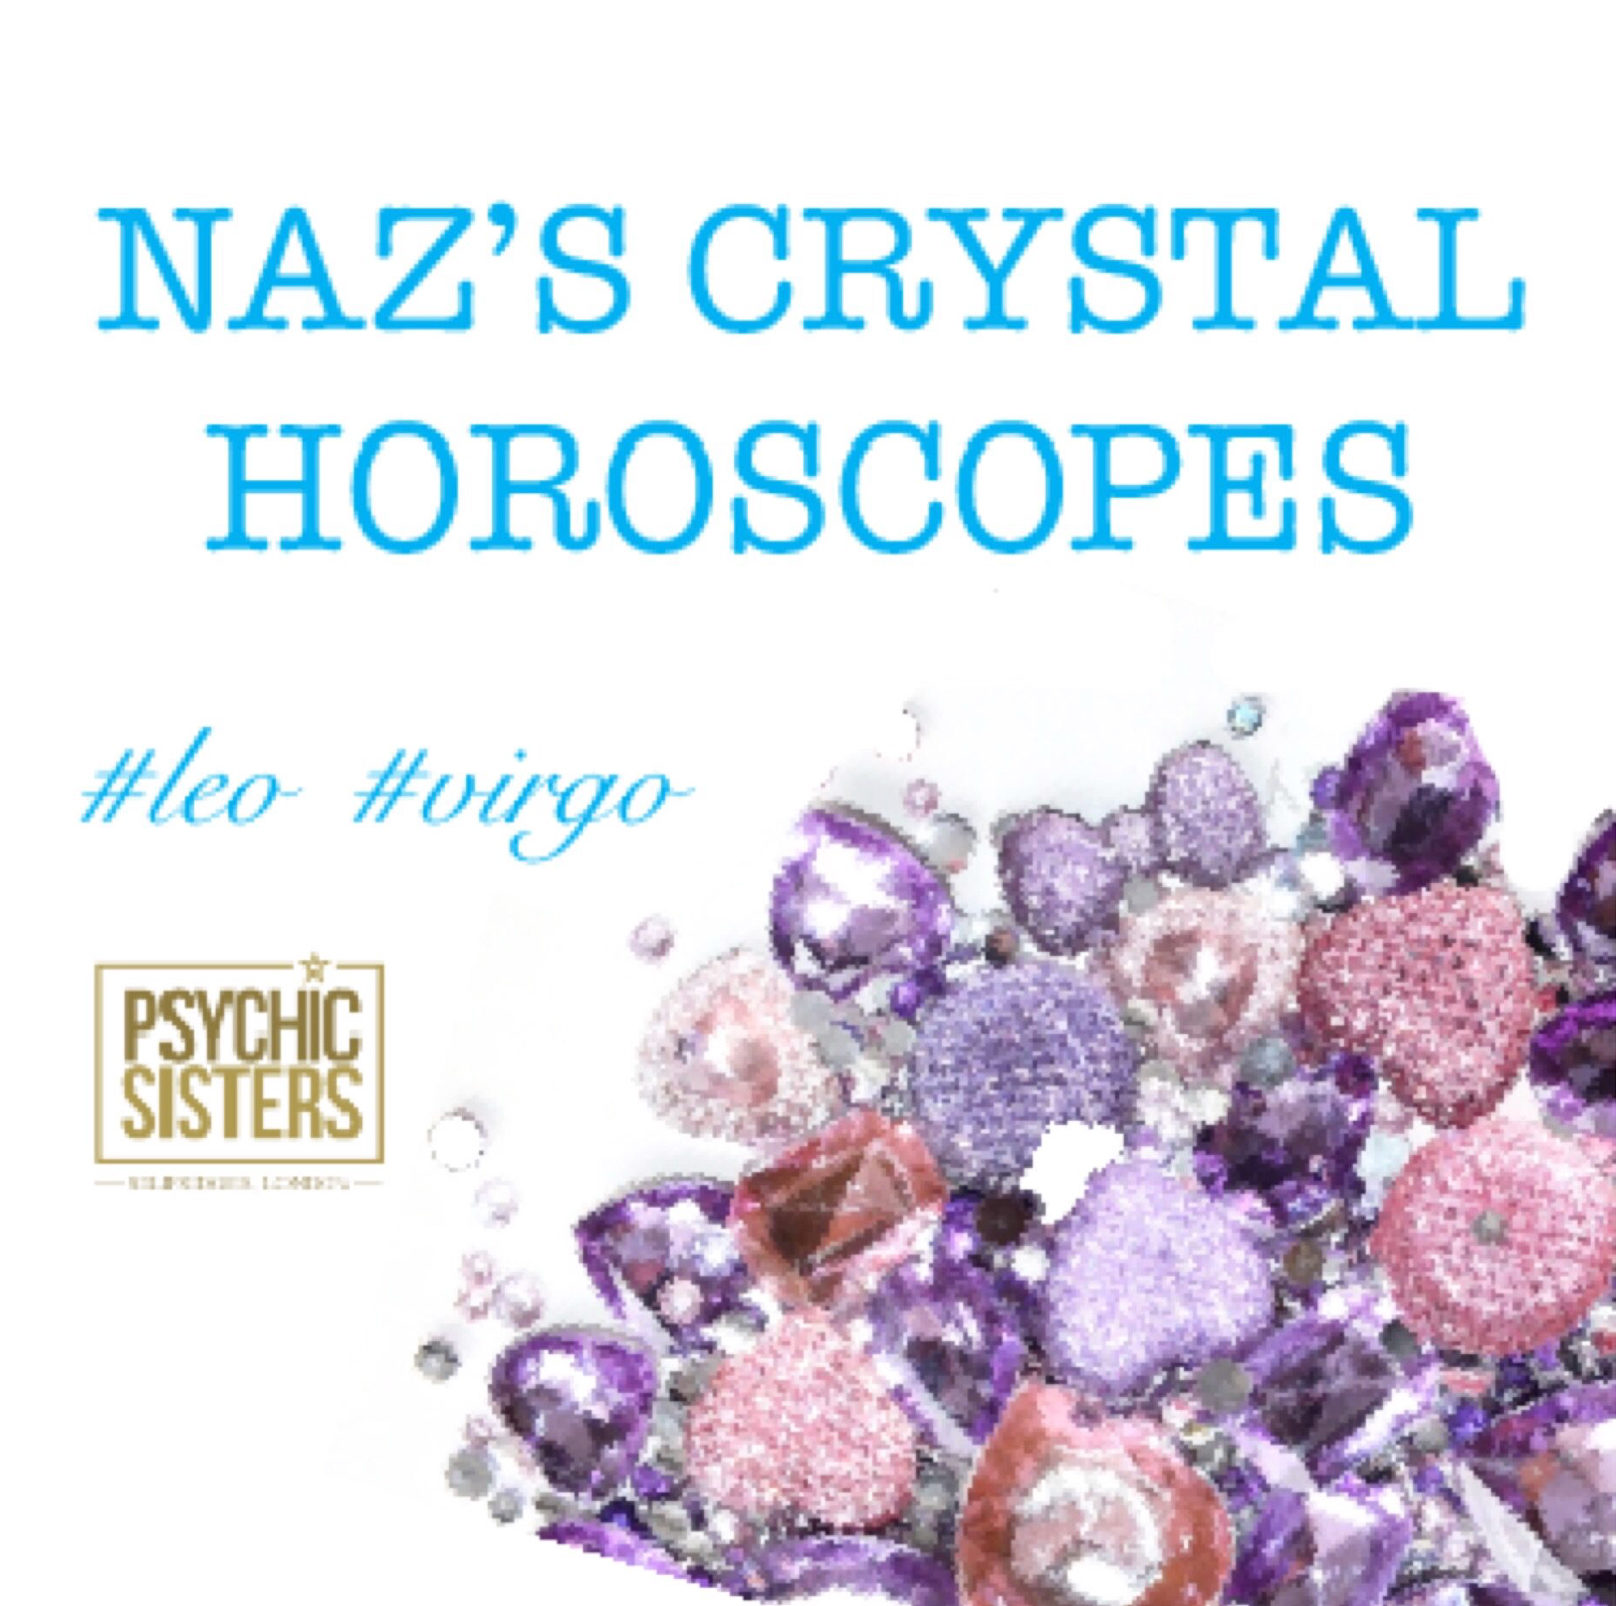 Naz's crystal horoscopes 10th - 16th June 2018